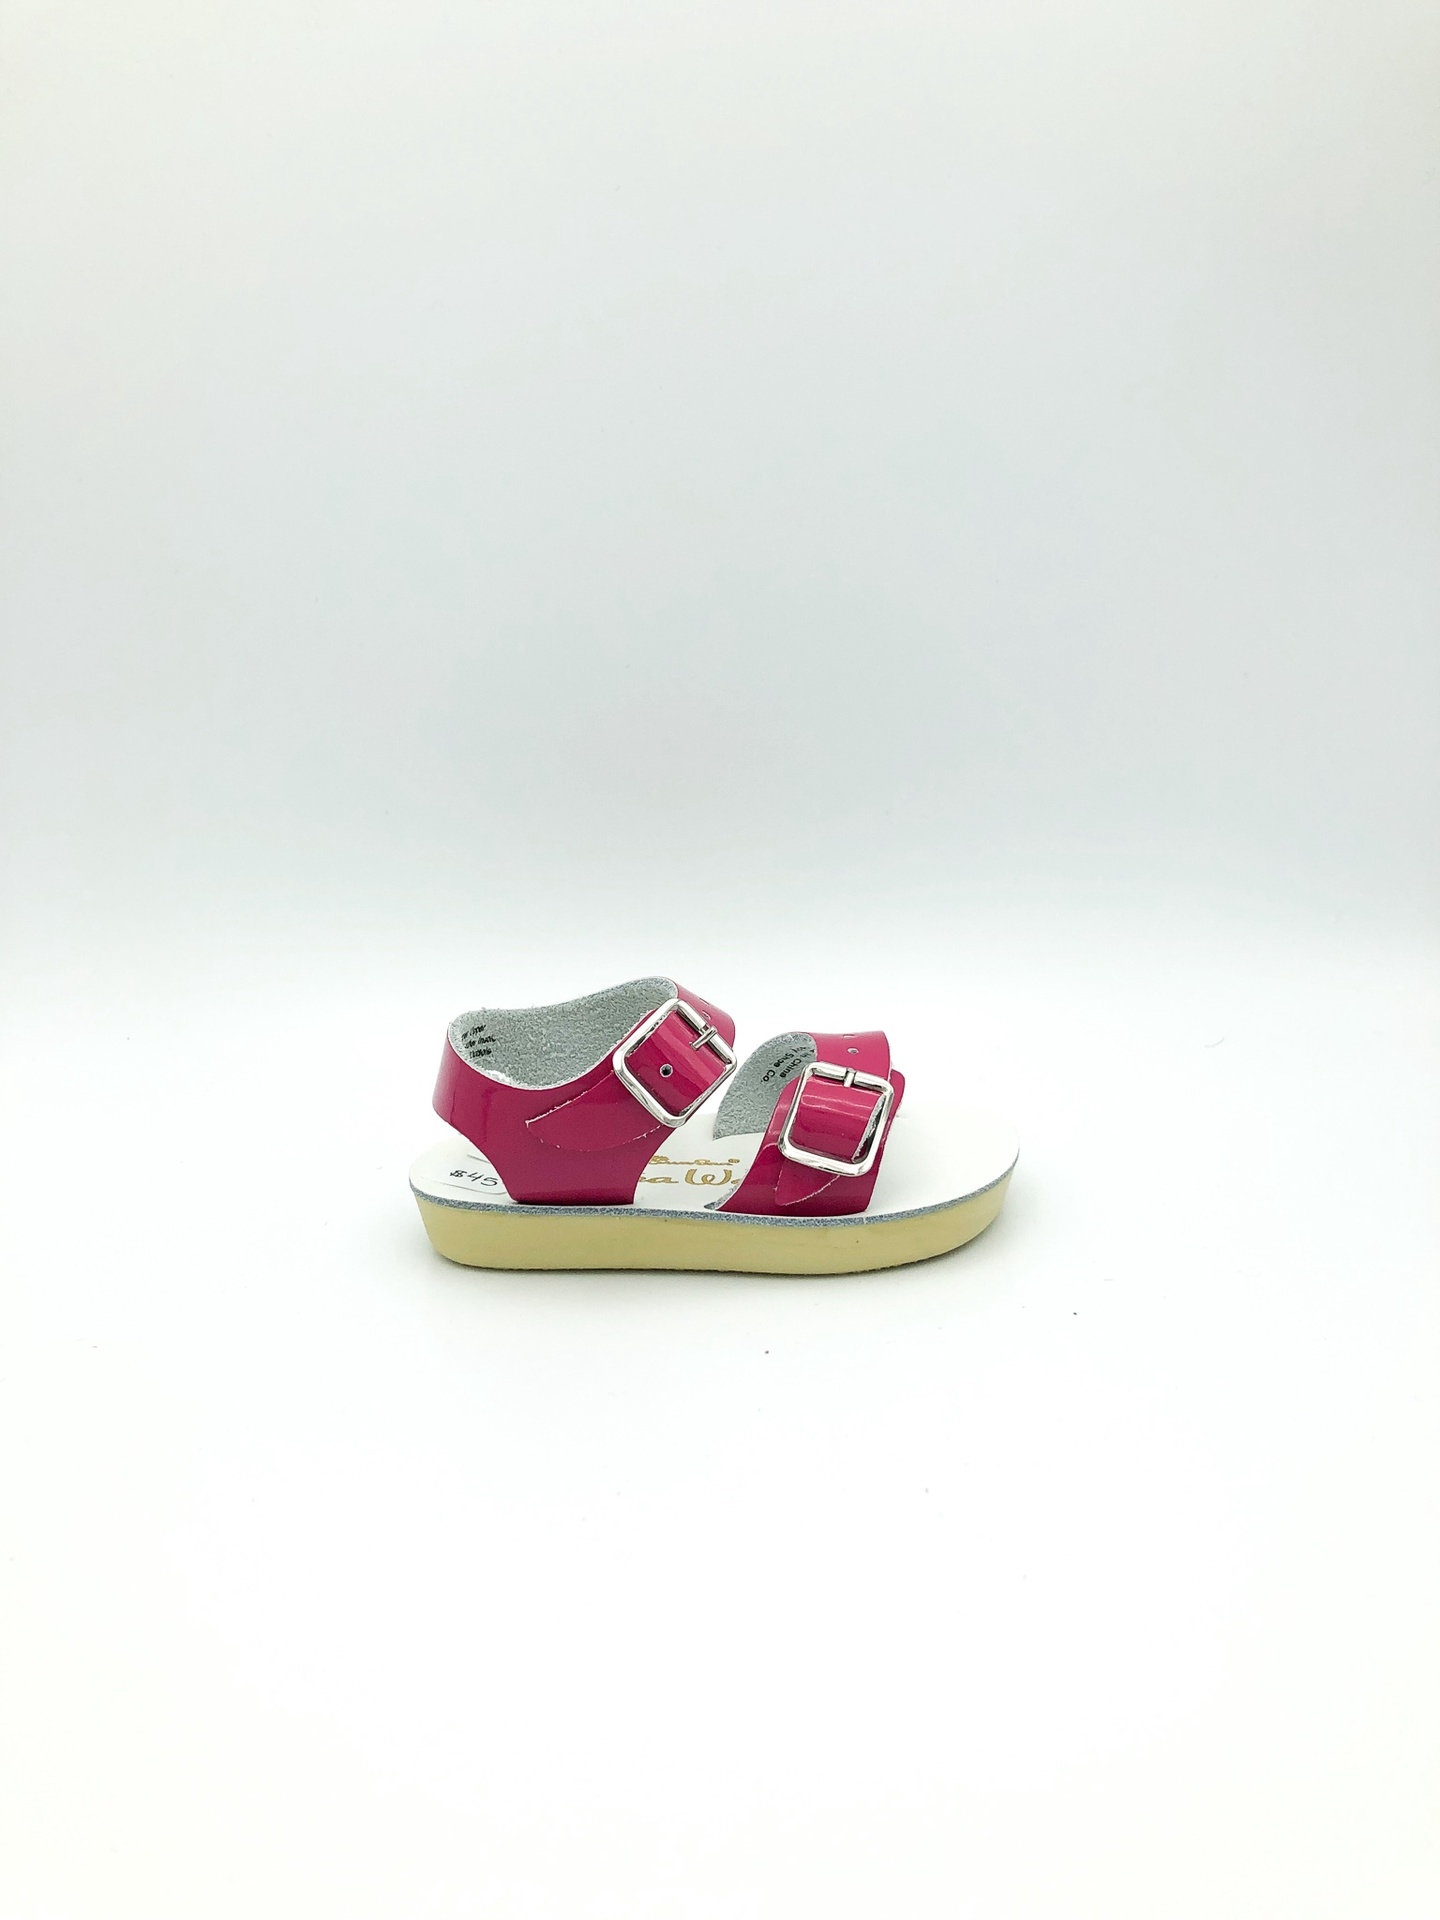 SALT WATER SANDALS - SEA WEES IN FUCHSIA (INFANT 1-3)